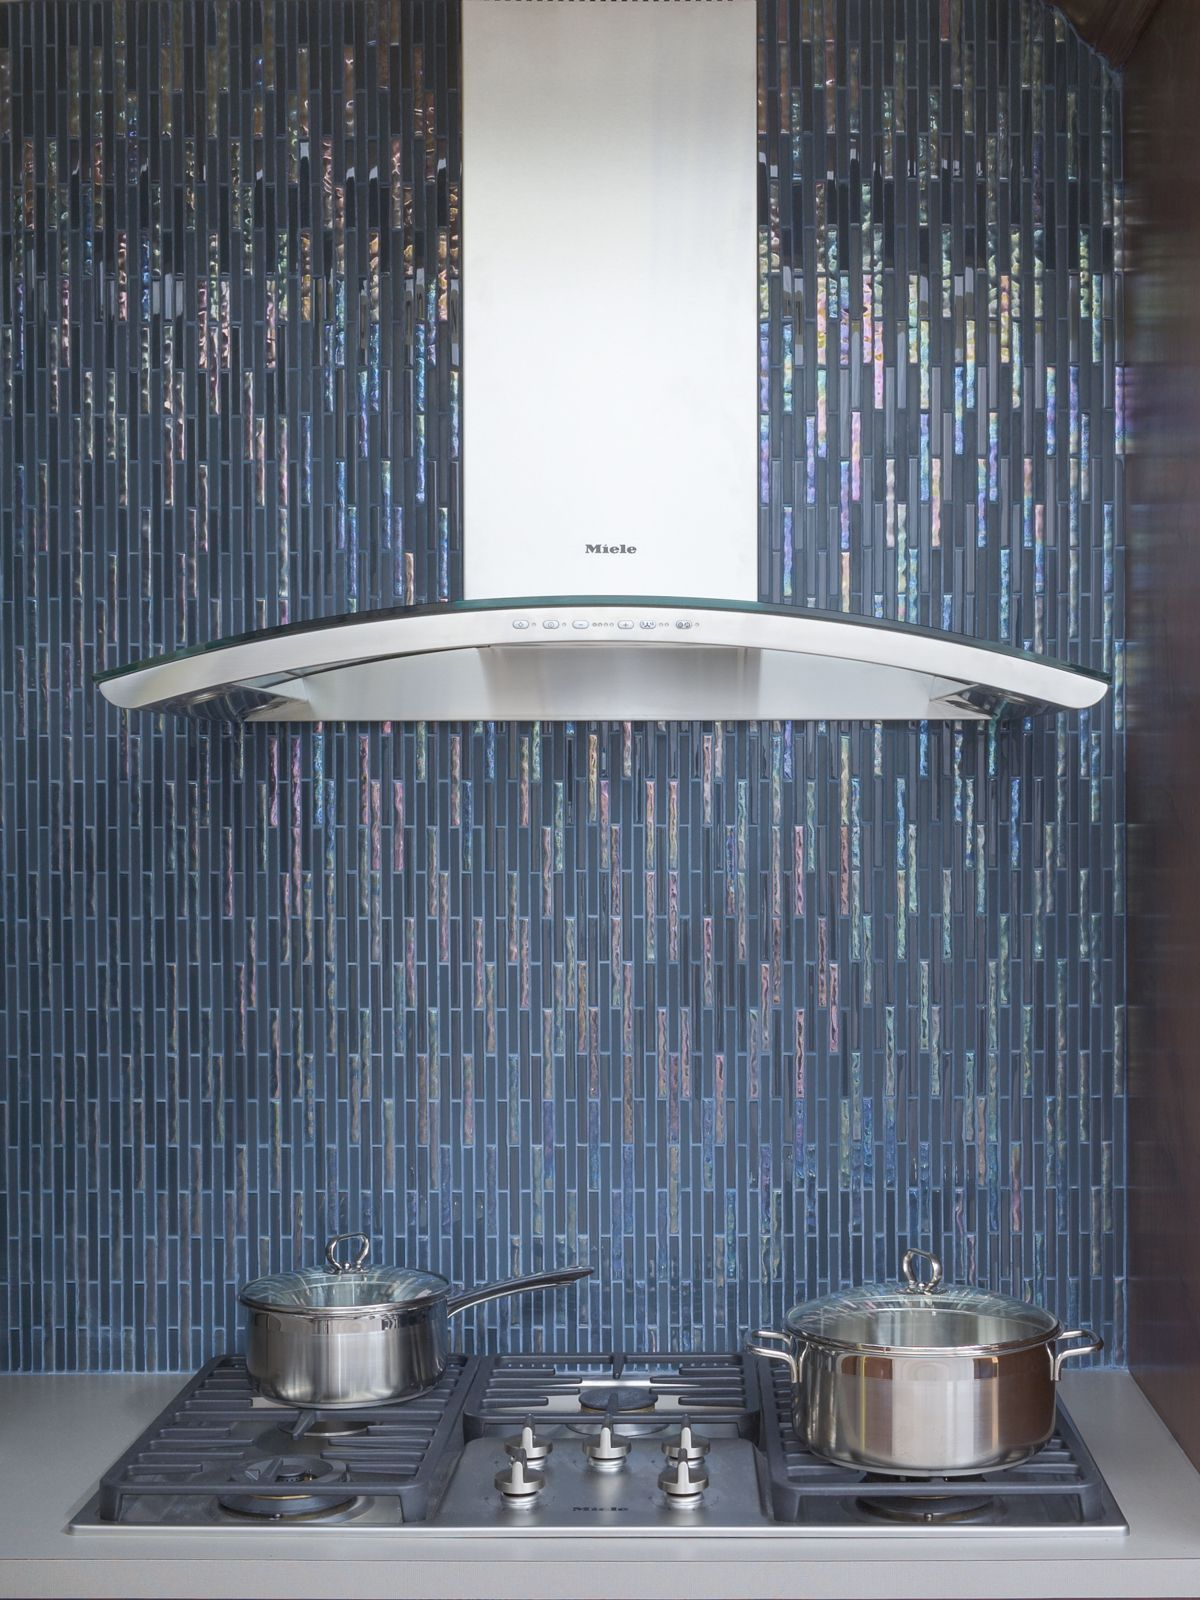 Interstyle Icestix glass mosaic tile looks like cascading water in this vertical orientation